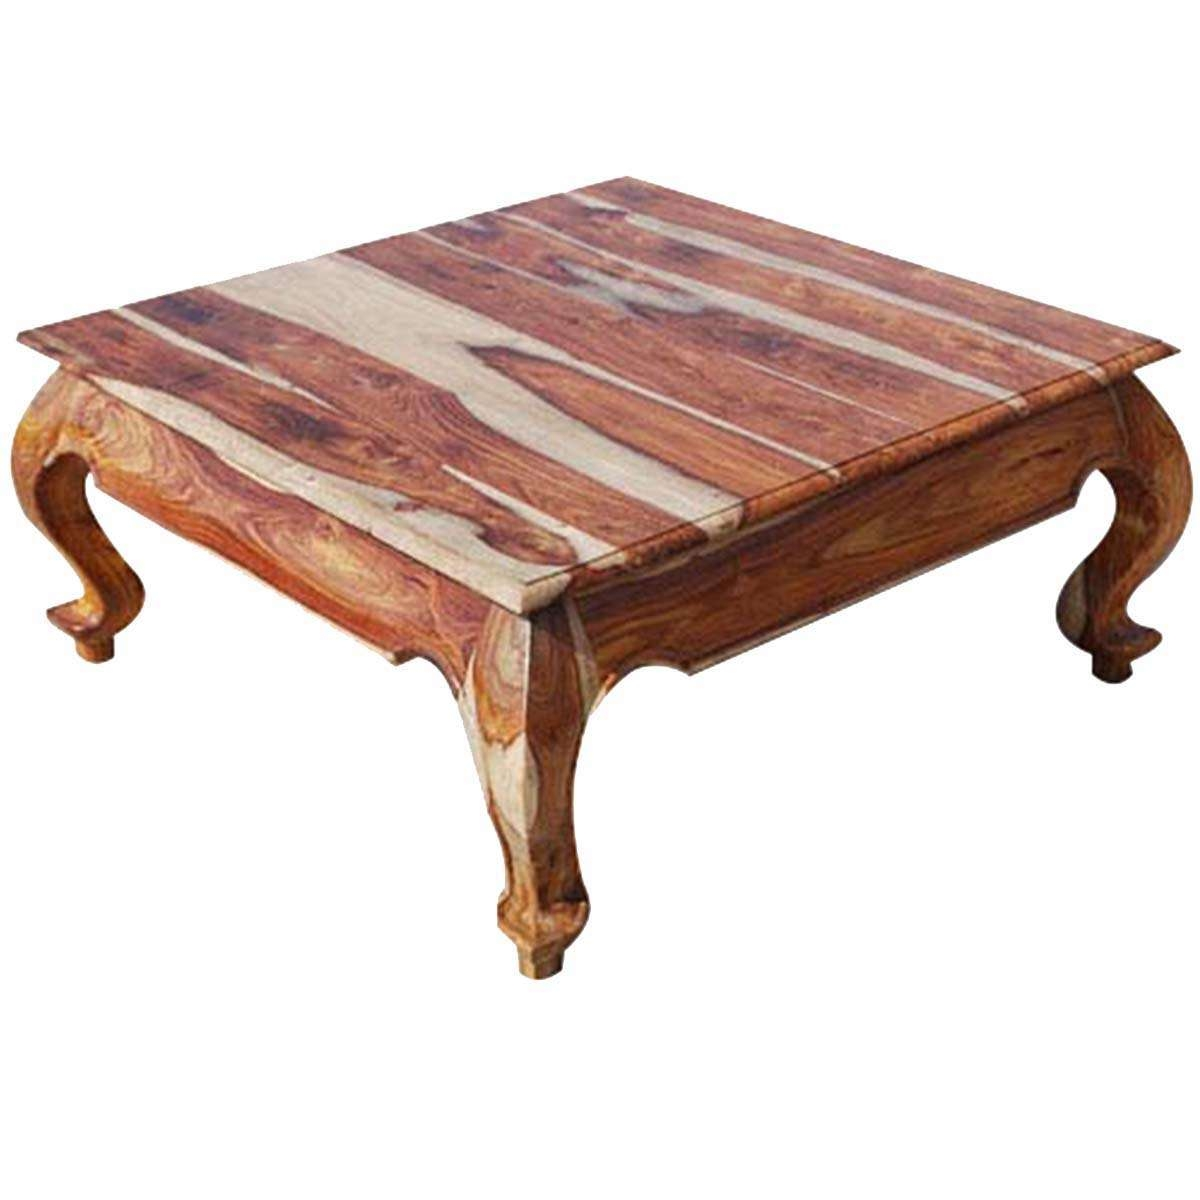 Most Current Rustic Wooden Coffee Tables Throughout Custom Made Rustic Wood Coffee Tables (View 10 of 20)